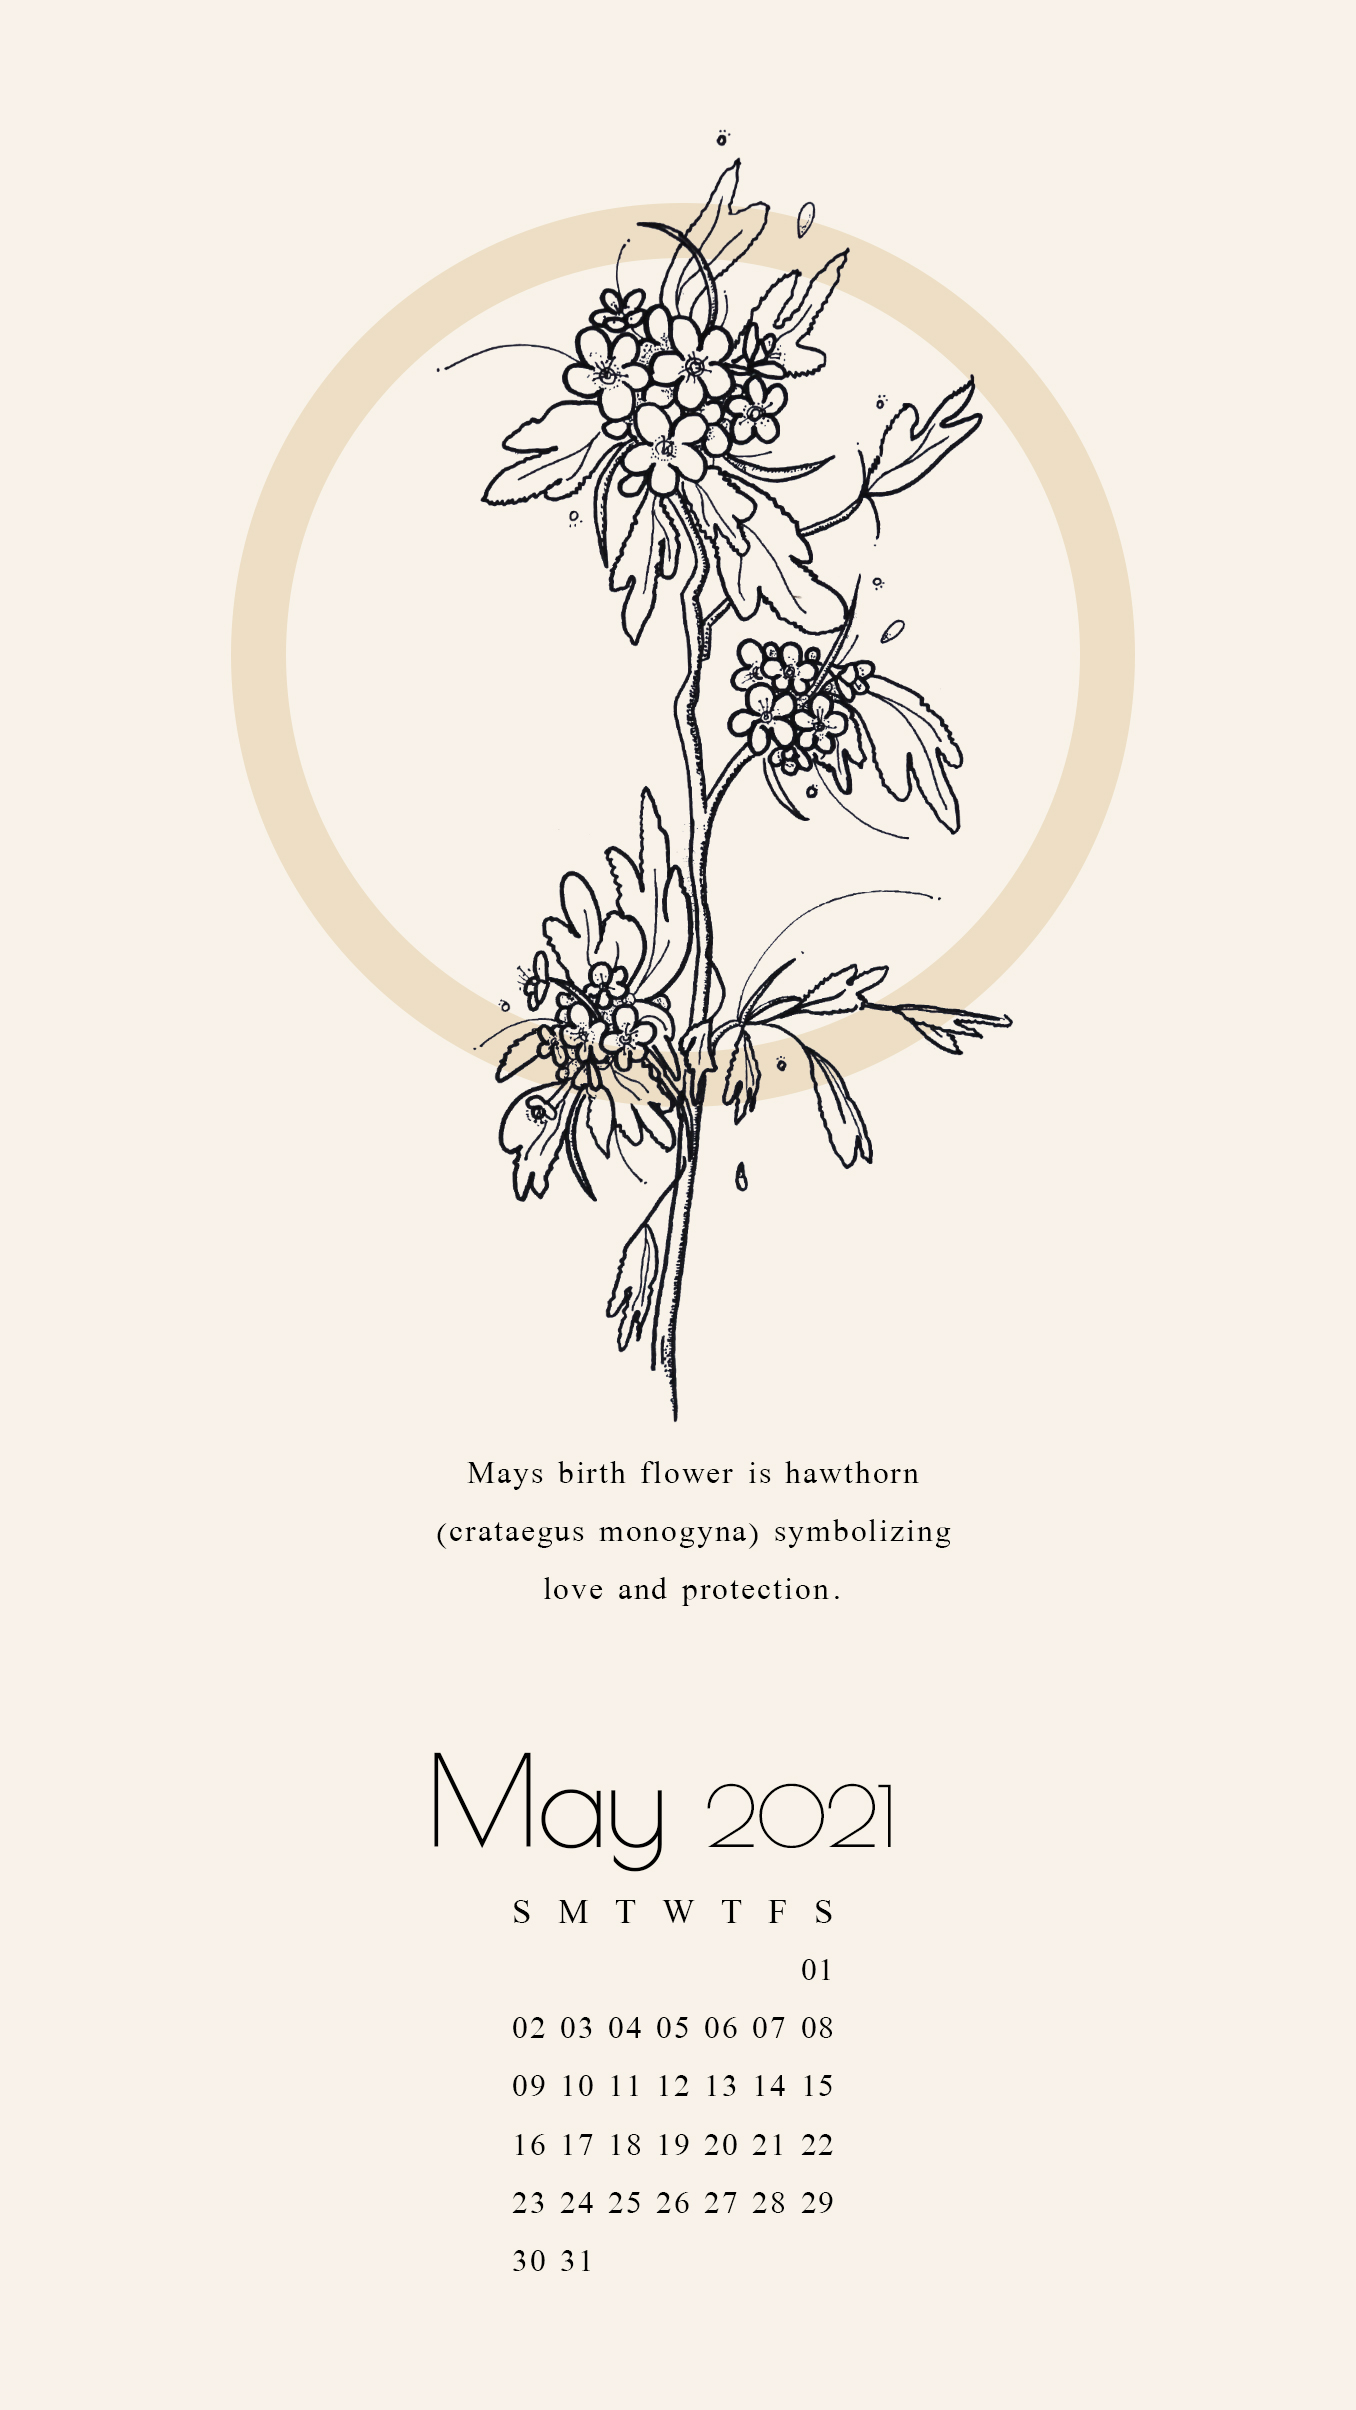 may2021, walllpaper